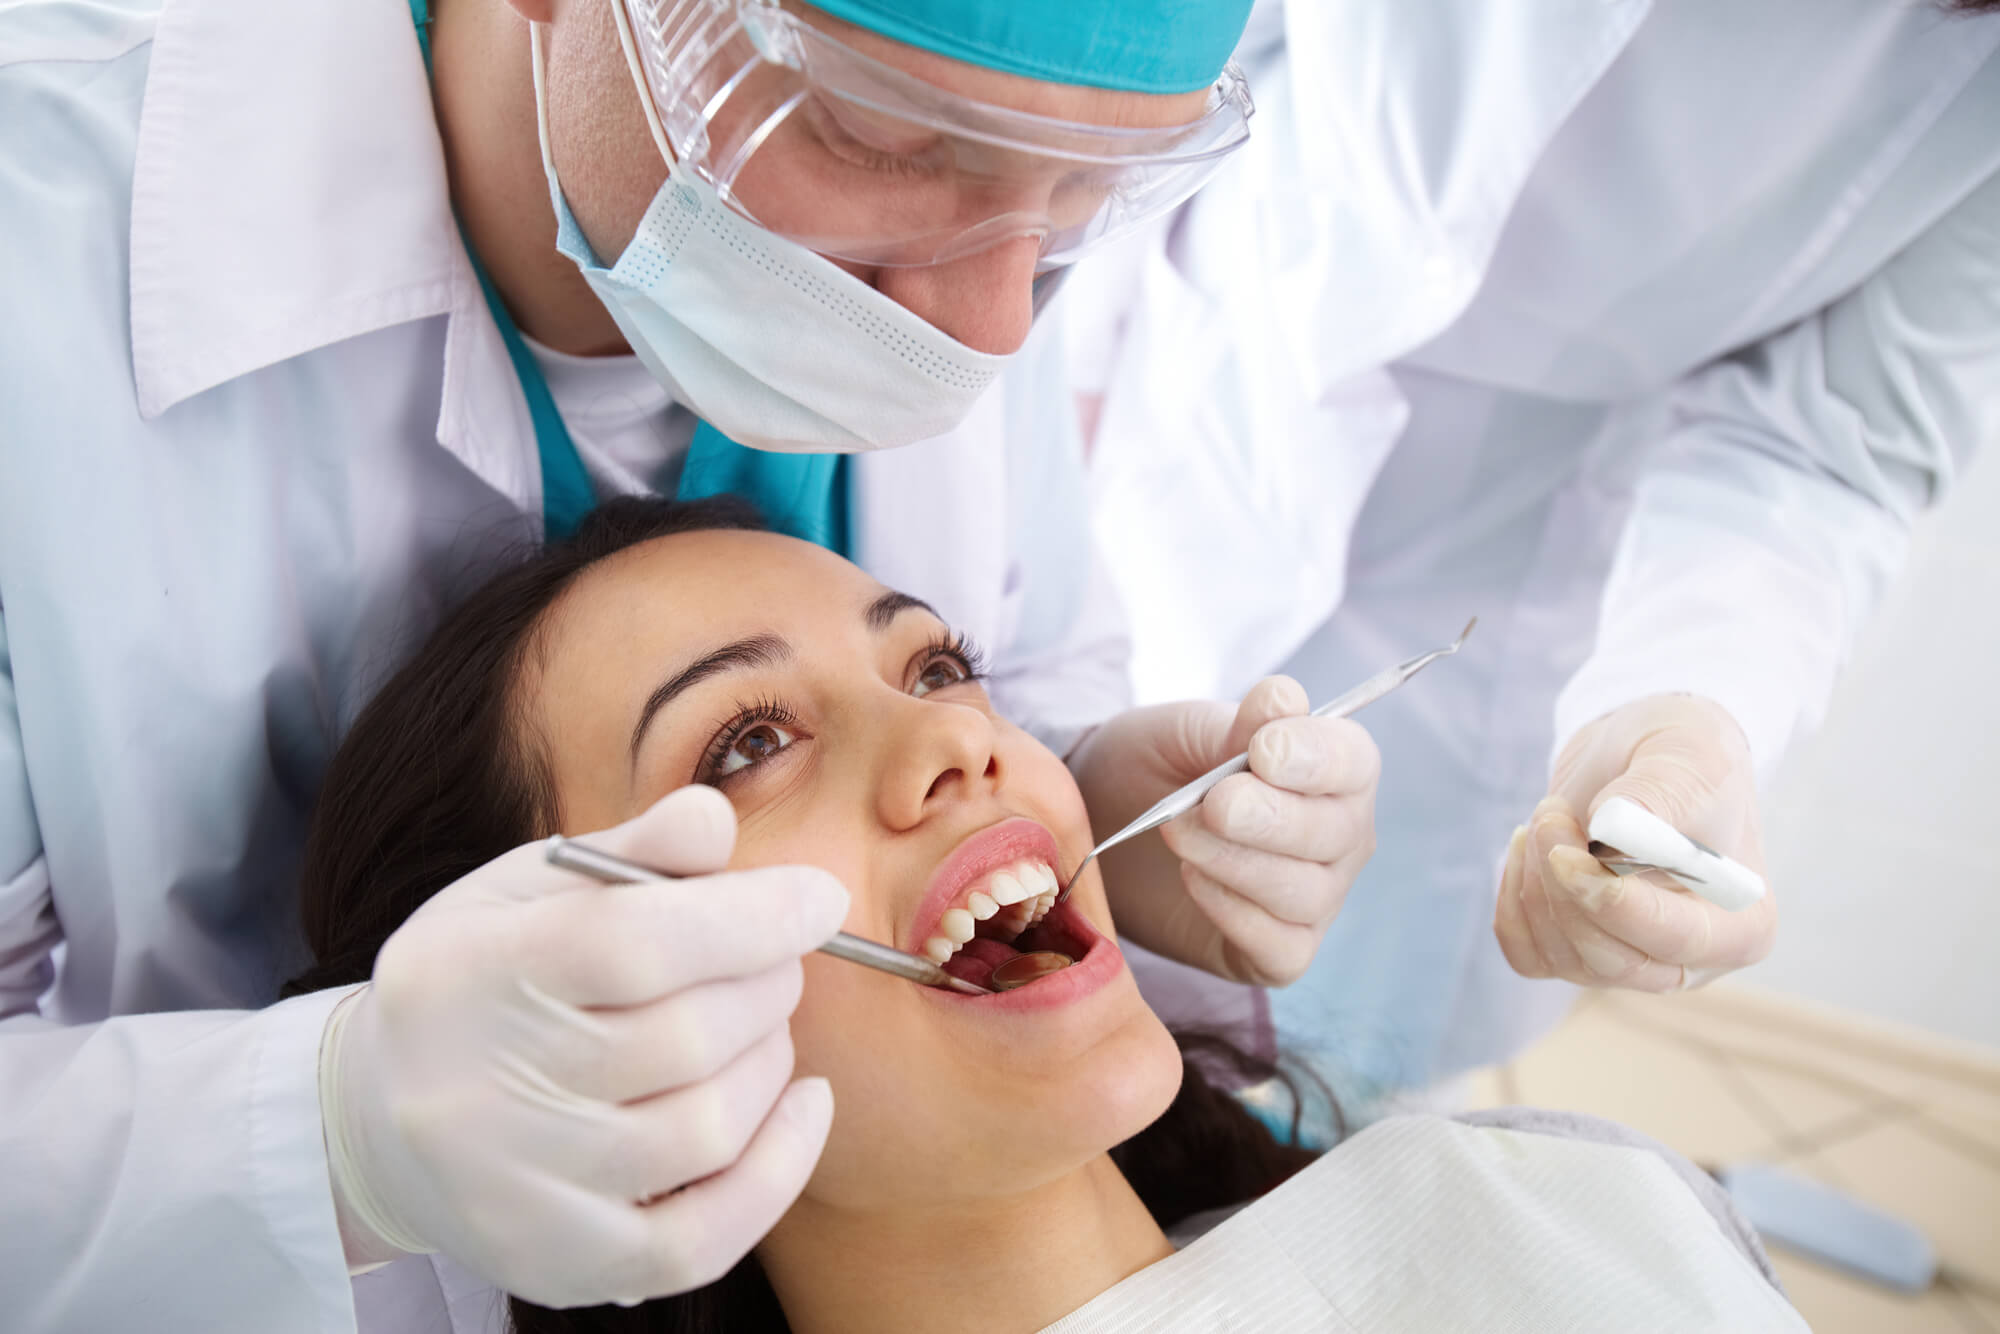 who offers a dentist boynton beach?